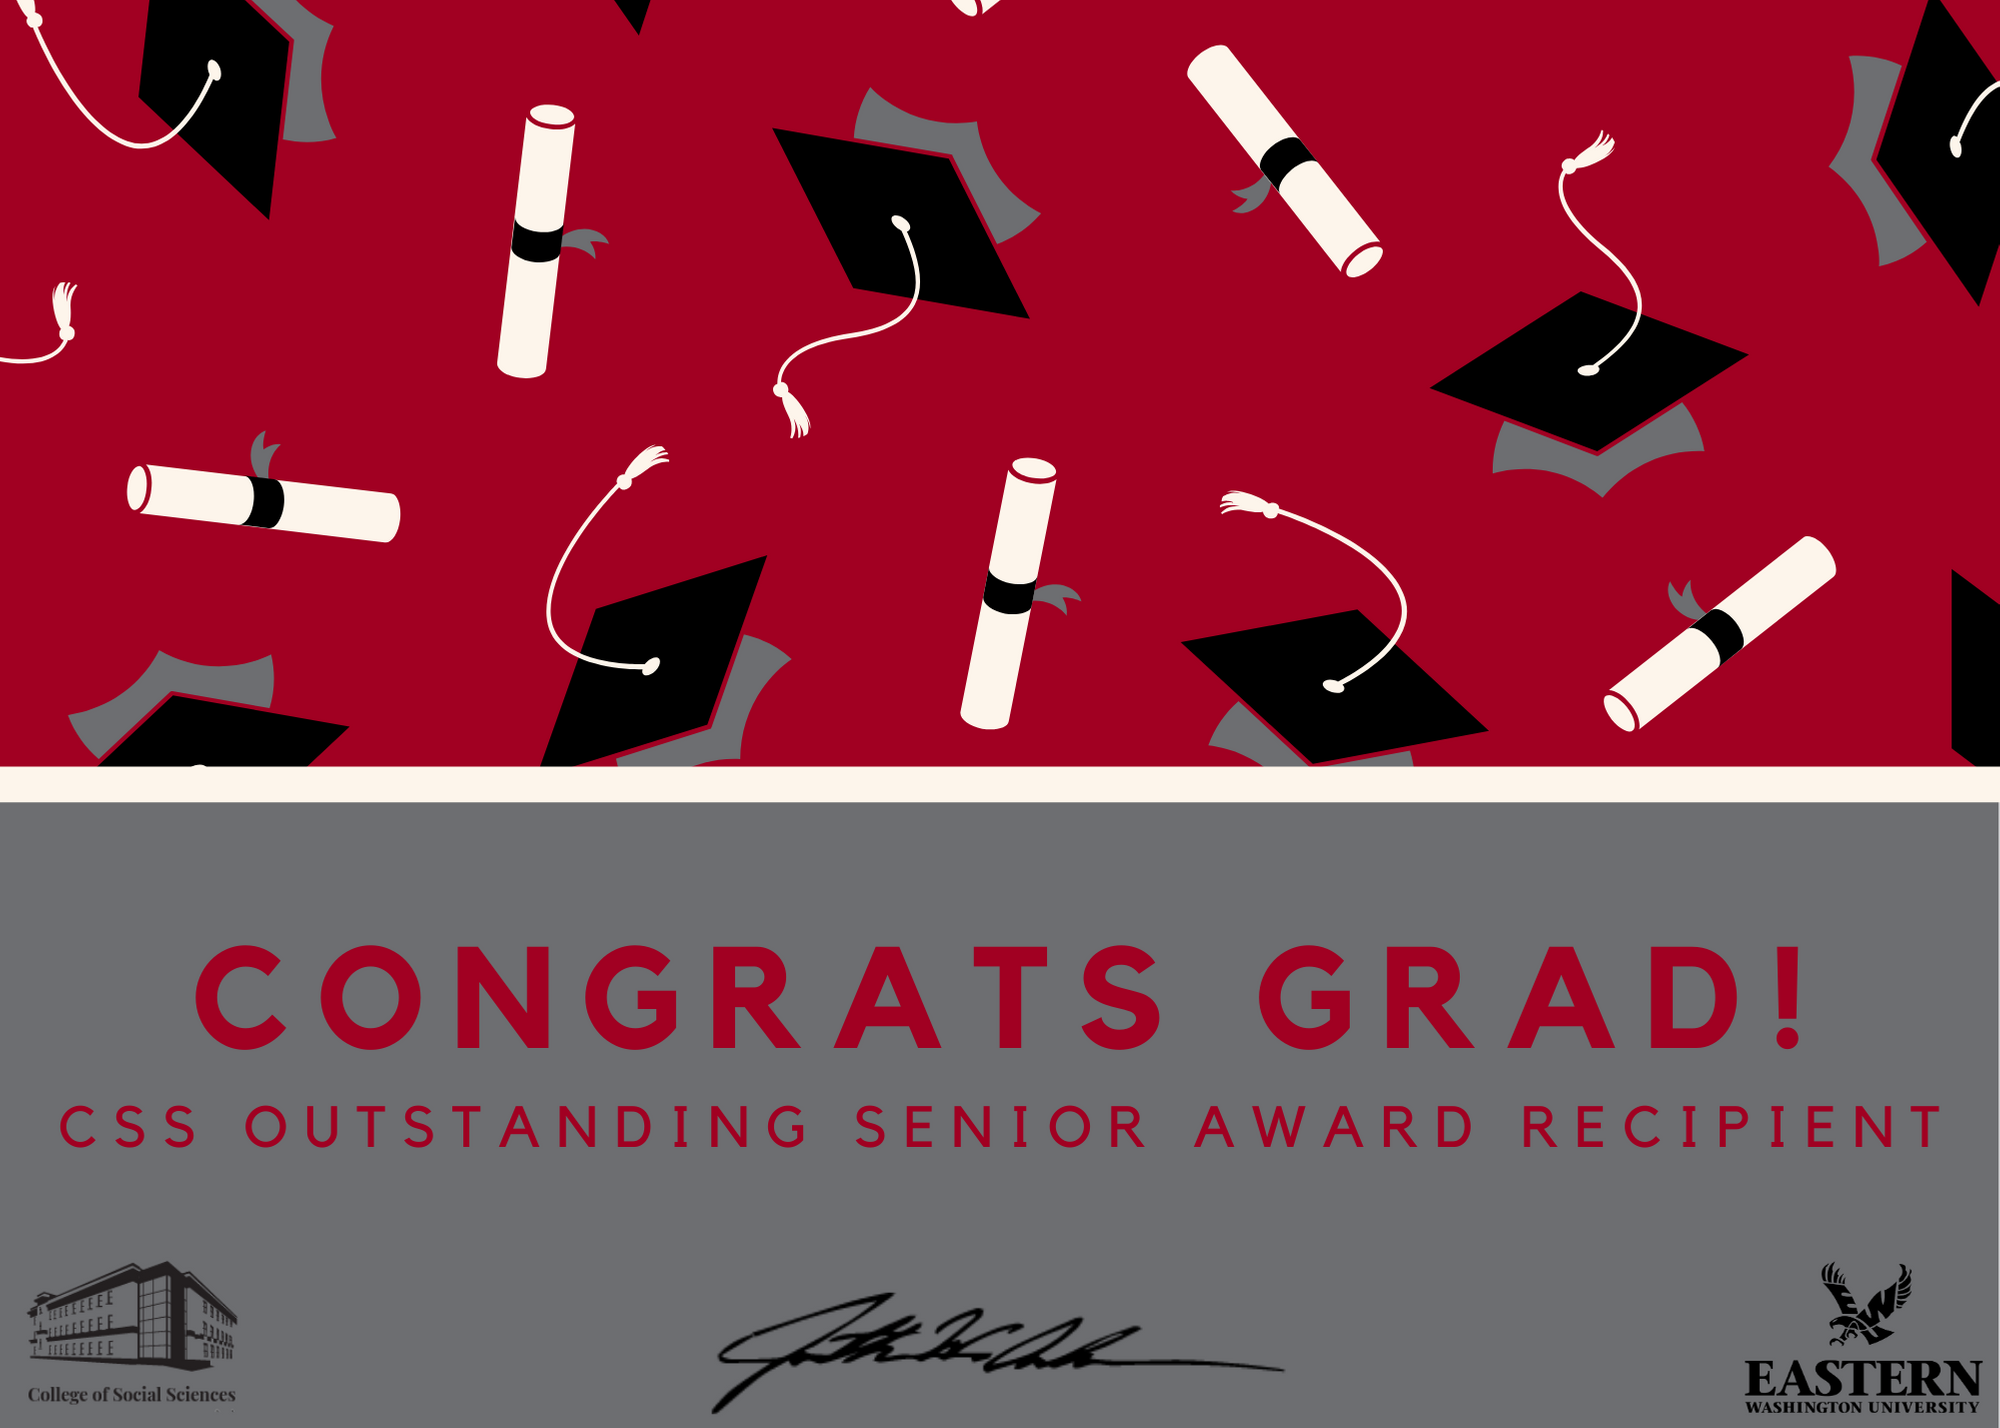 2109-caps-and-diplomas-pattern-graduation-card-2.png